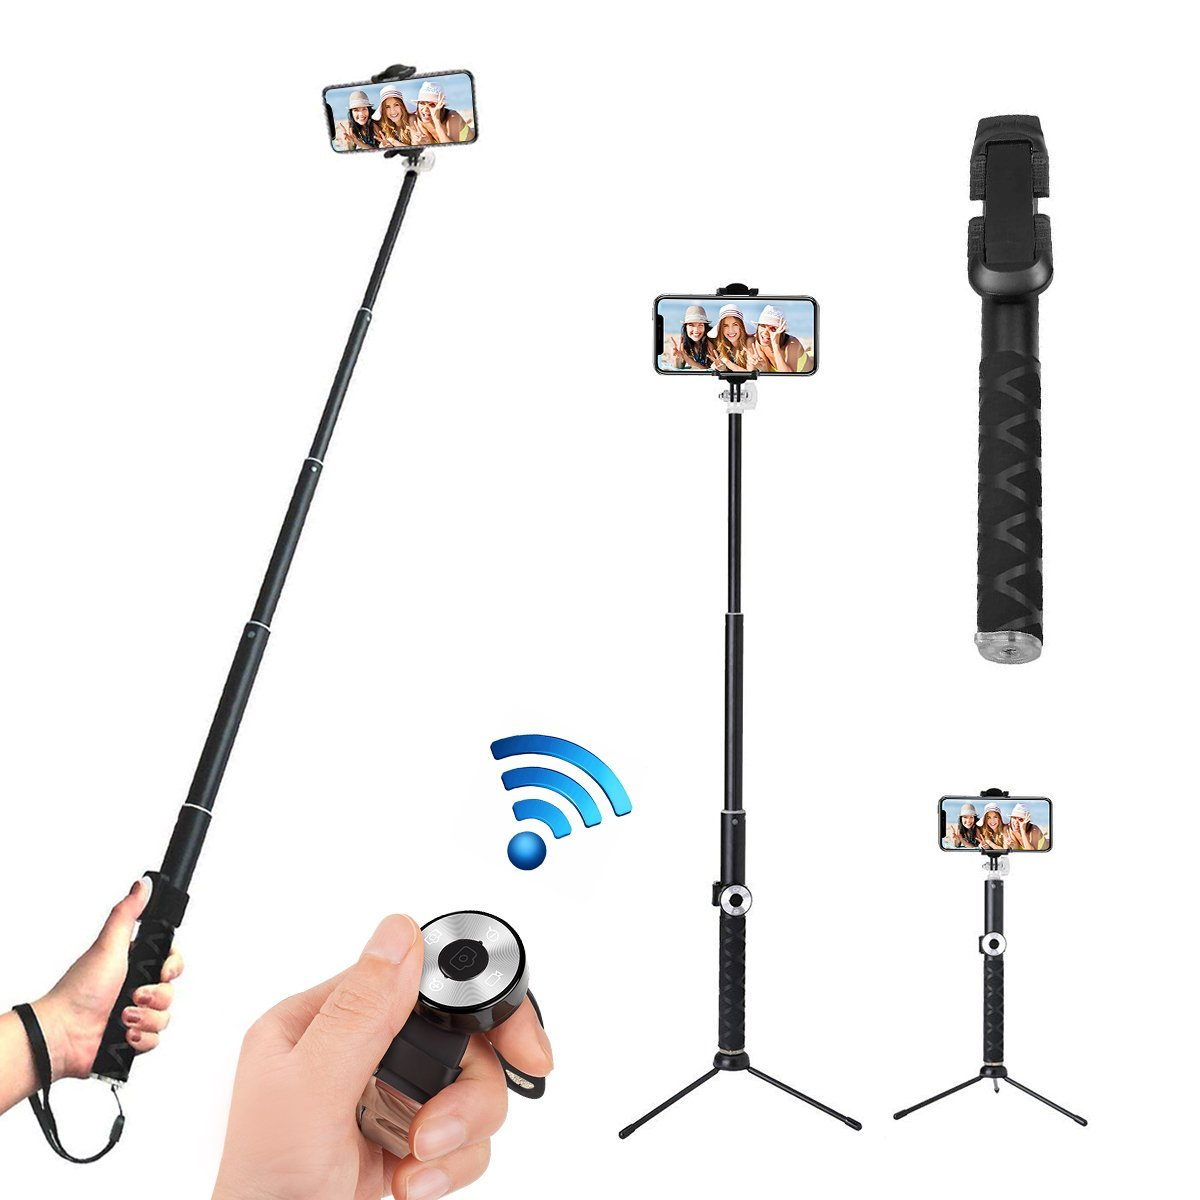 Selfie Stick Bluetooth, Roogeld Wireless Selfie Stick Tripod Rotation Extendable 32.67''Monopod Aluminum with Bluetooth Remote Shutter for iPhone X/8/8P/7/7P, GoPro,Samsung Galaxy, Google, Huawei